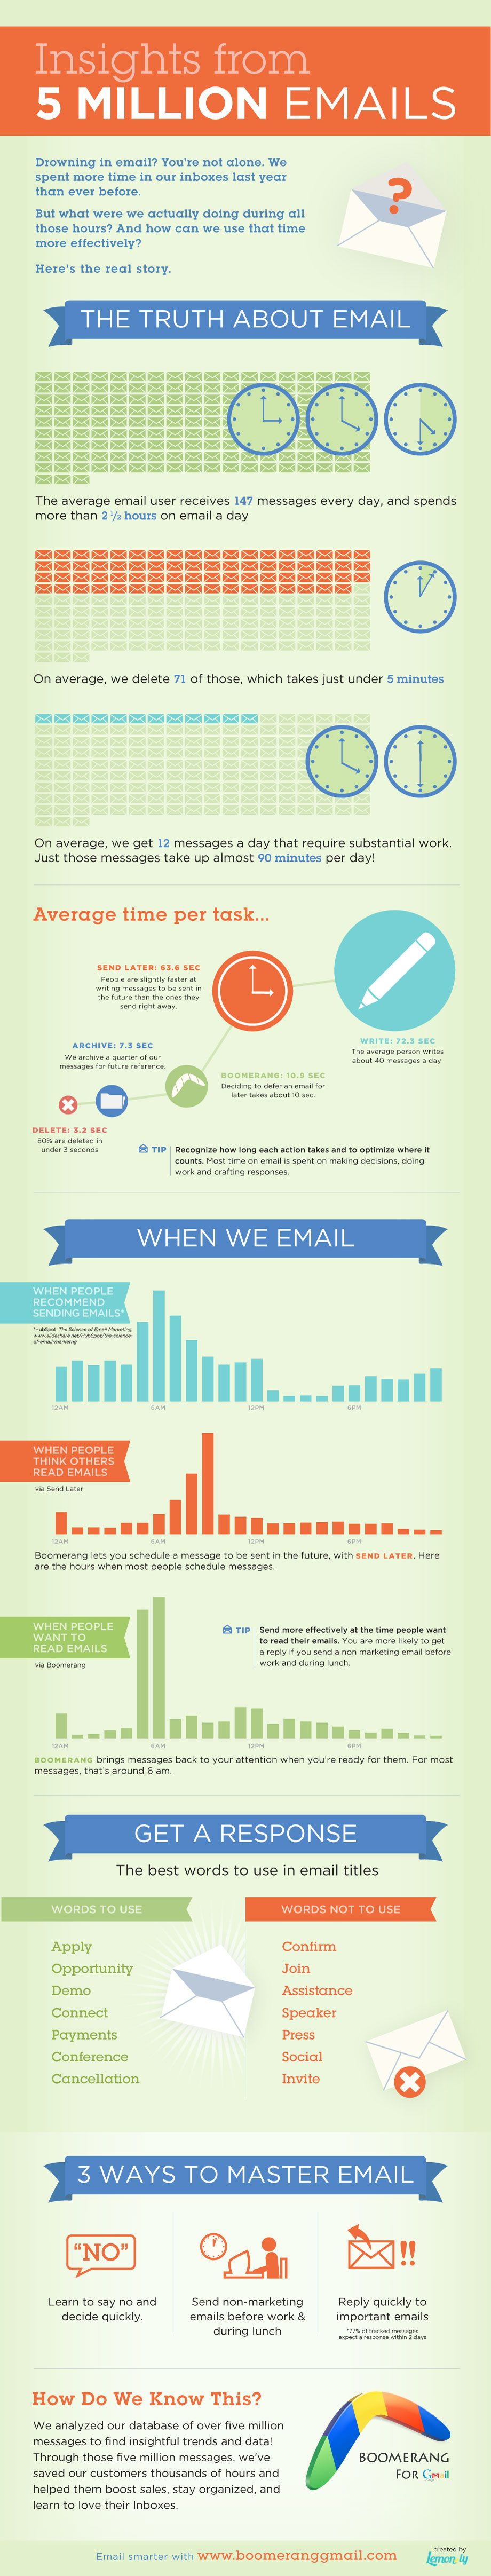 Sending emails - the right way